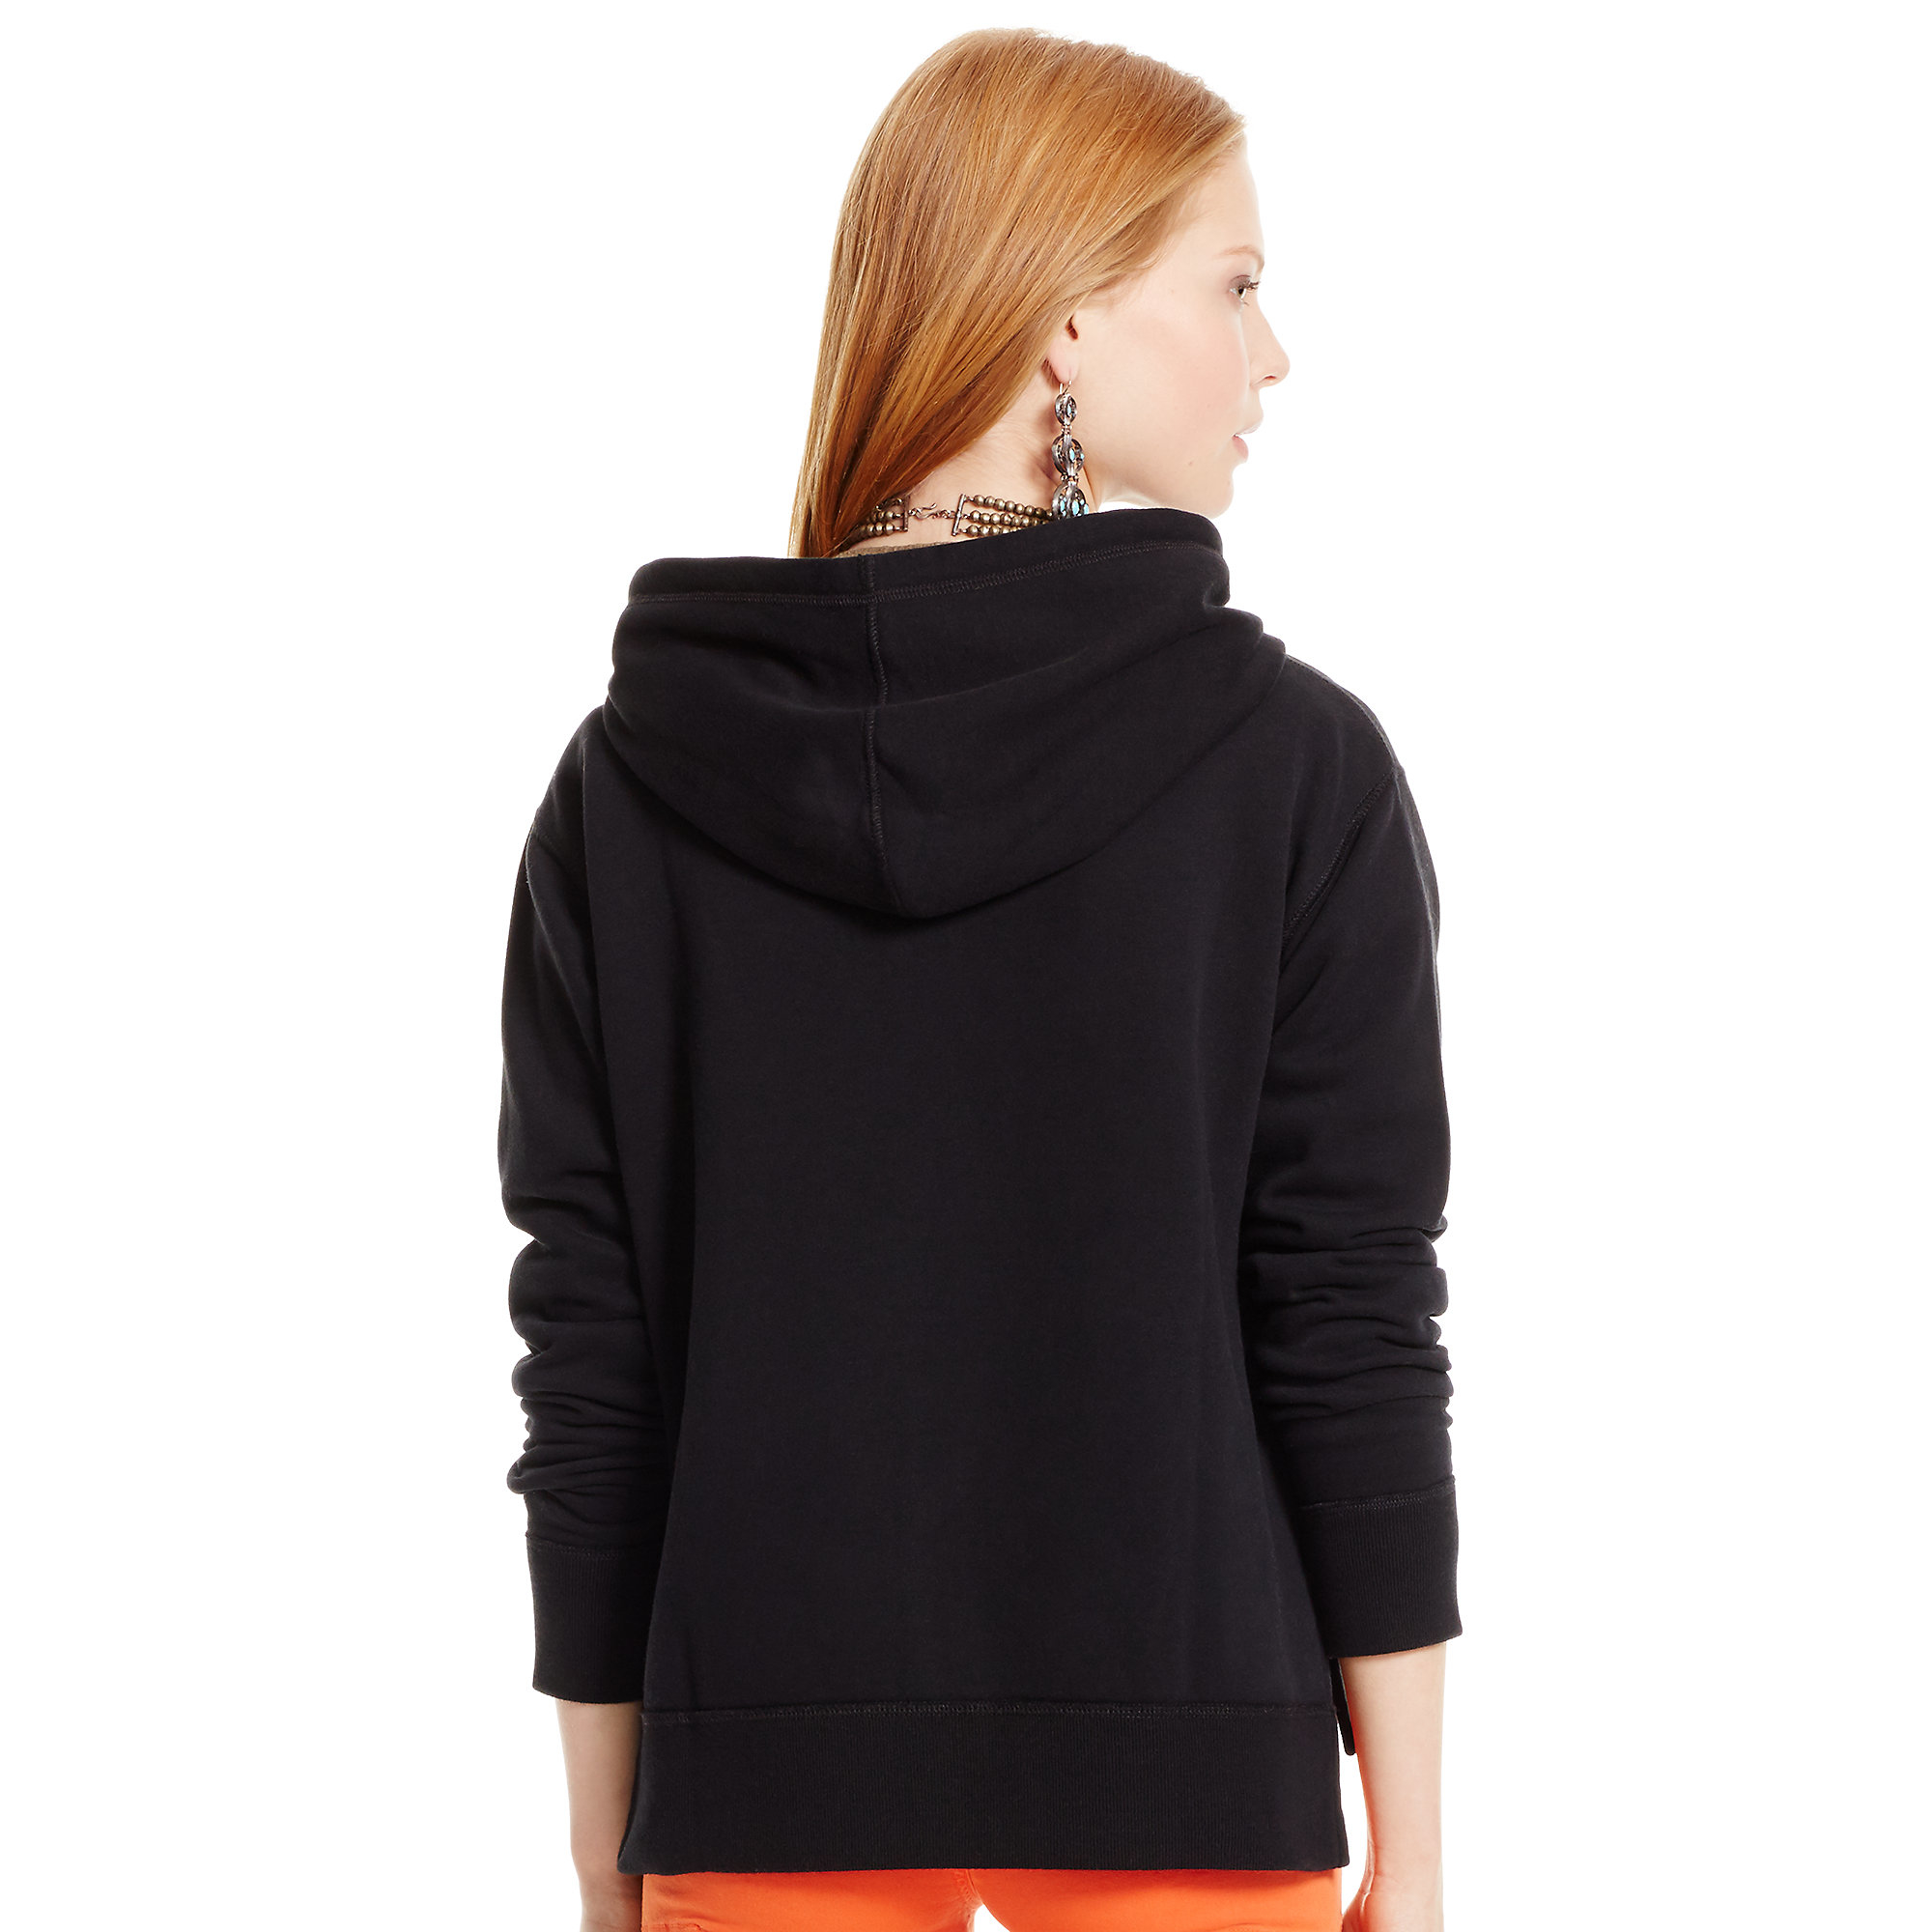 polo ralph lauren oversized fleece hoodie in black lyst. Black Bedroom Furniture Sets. Home Design Ideas